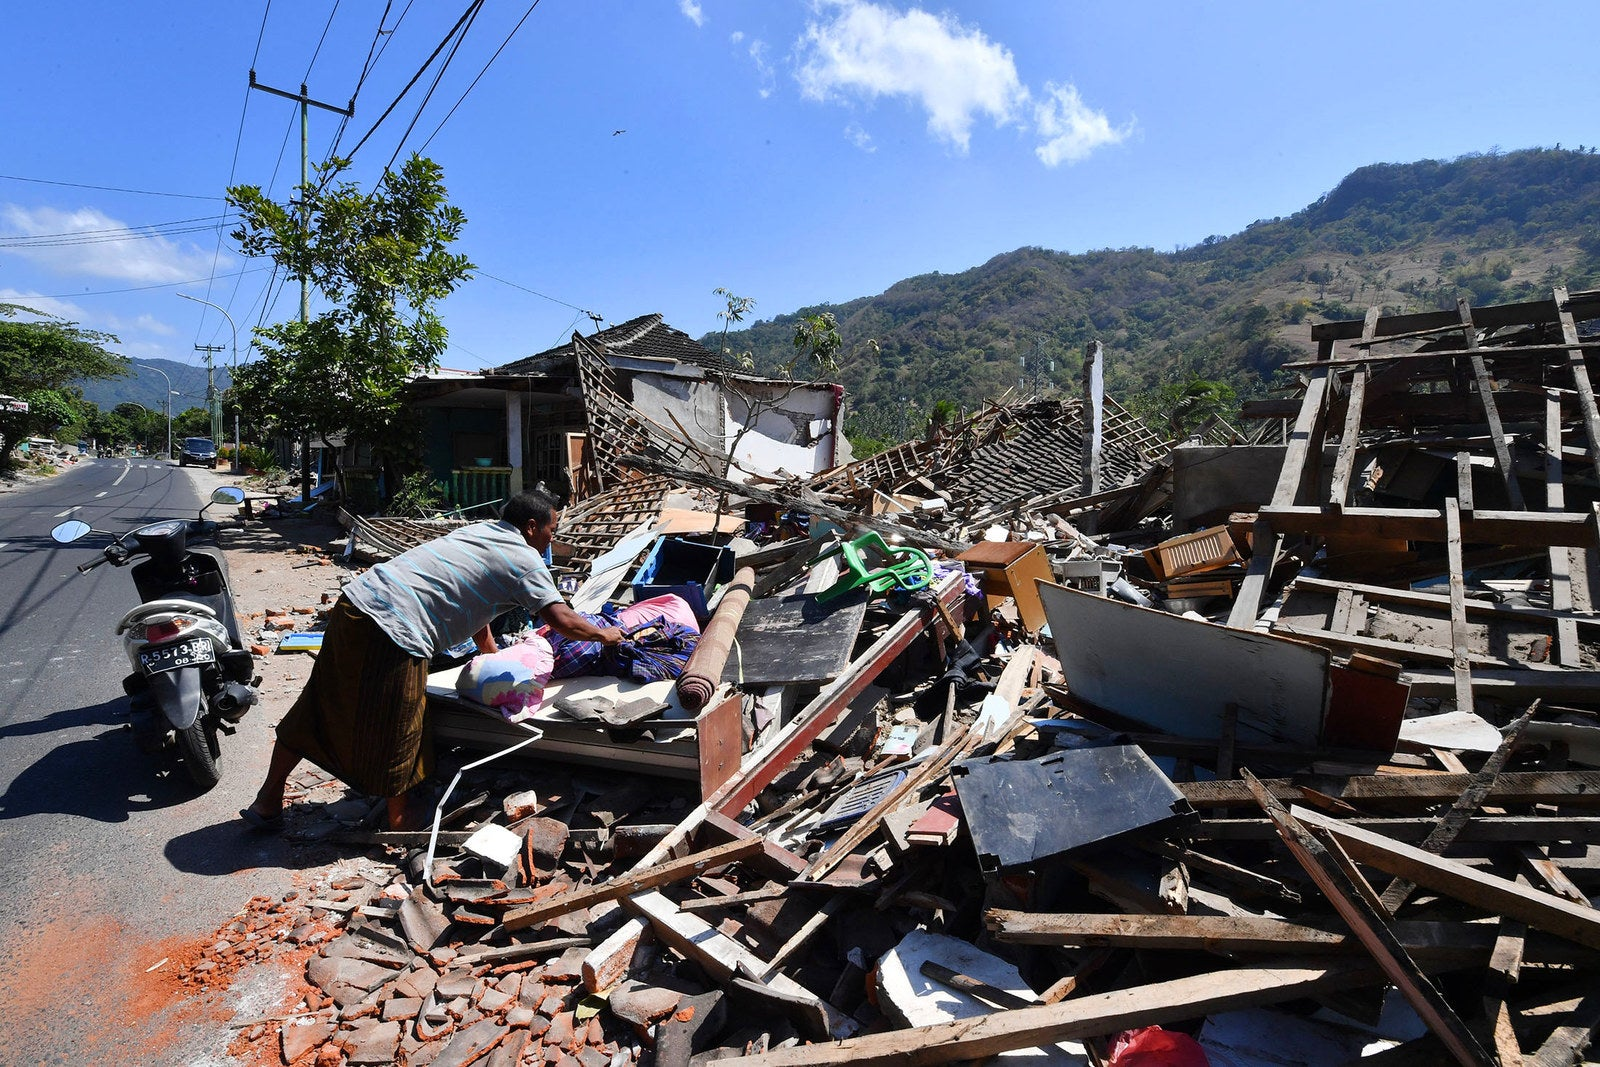 A villager salvages belongings from the ruins of a house in Pemenang.